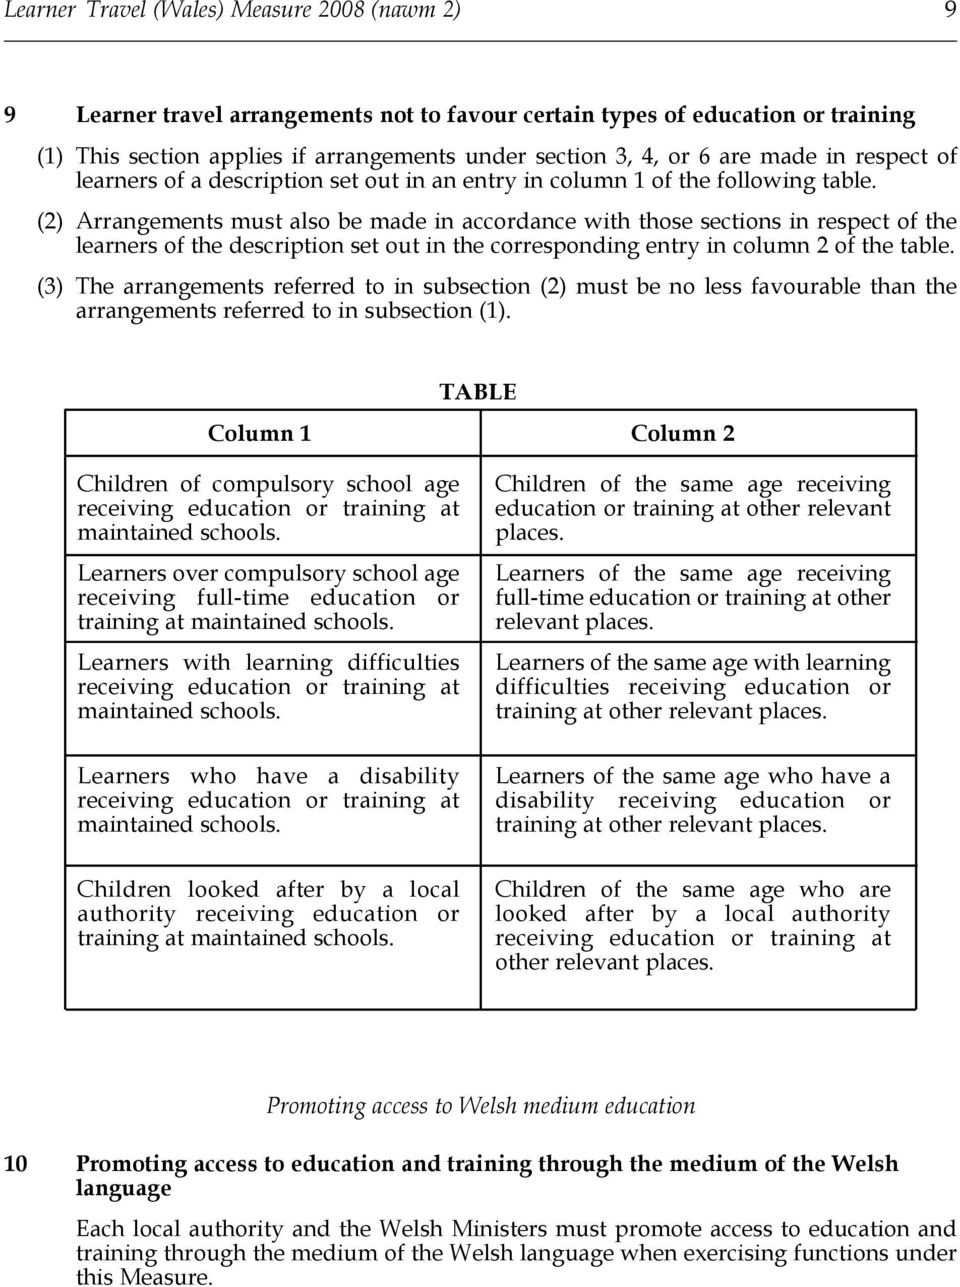 (2) Arrangements must also be made in accordance with those sections in respect of the learners of the description set out in the corresponding entry in column 2 of the table.